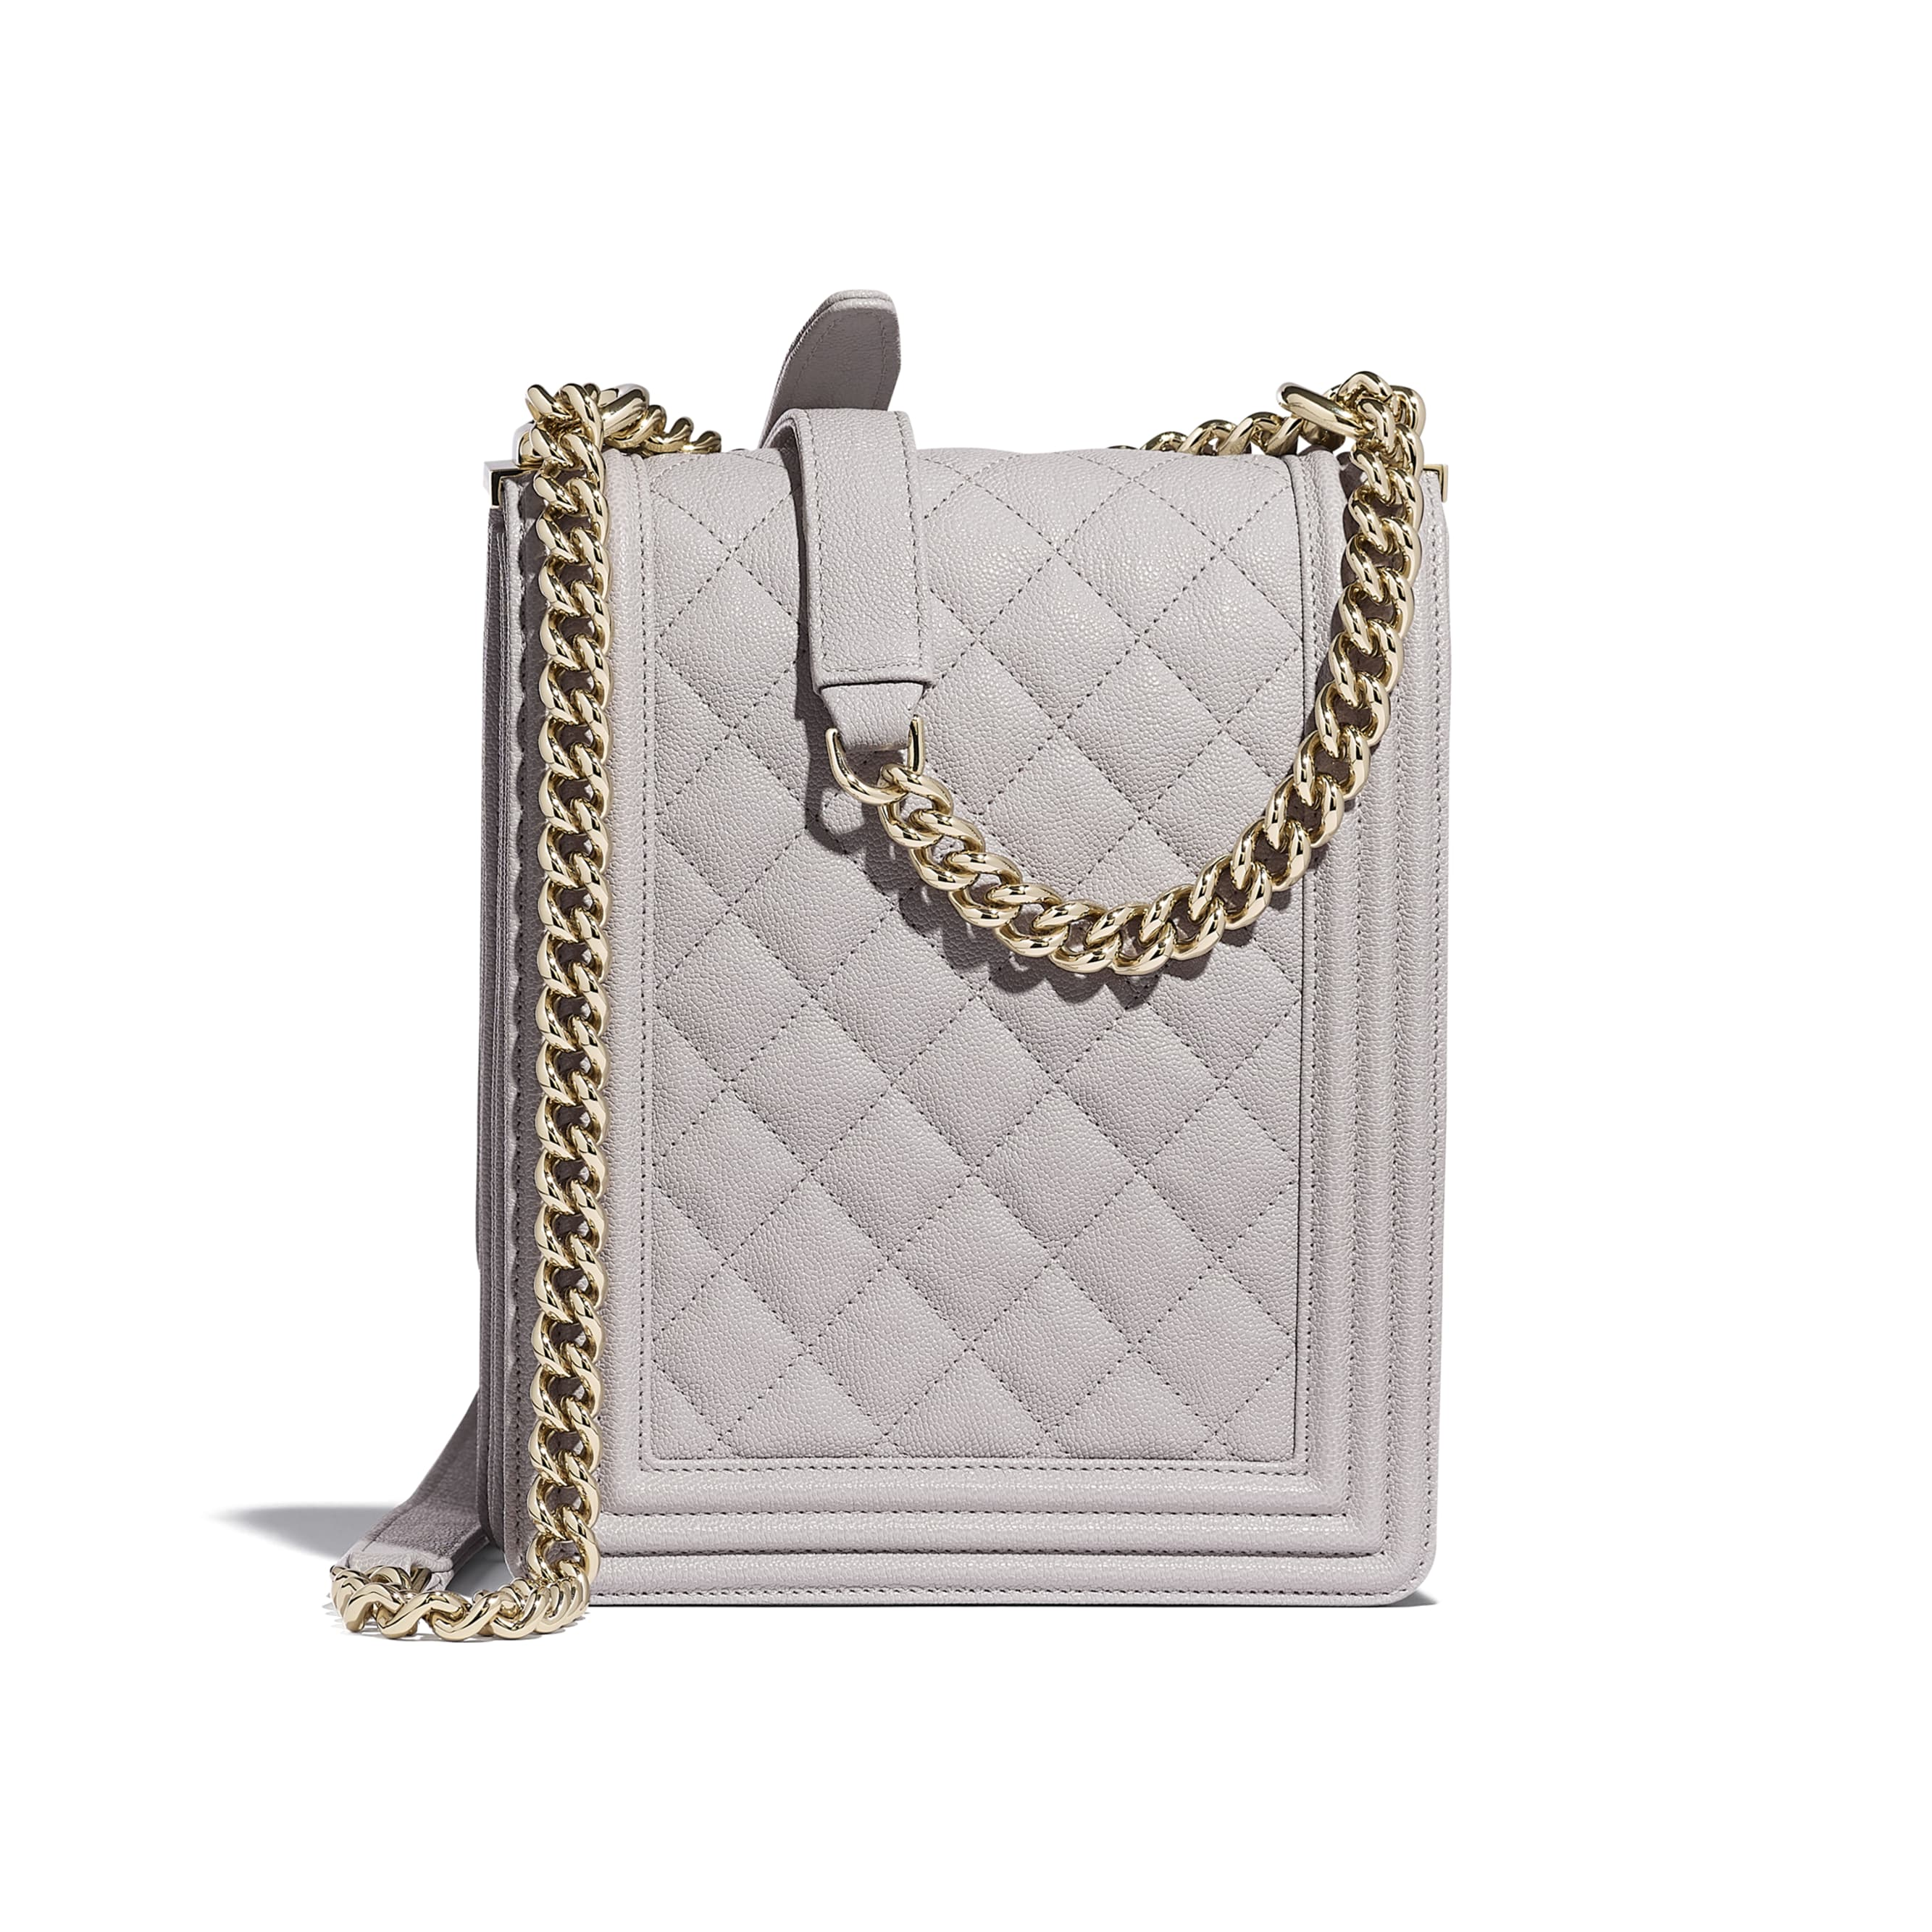 BOY CHANEL Handbag - Grey - Grained Calfskin & Gold-Tone Metal - Alternative view - see standard sized version